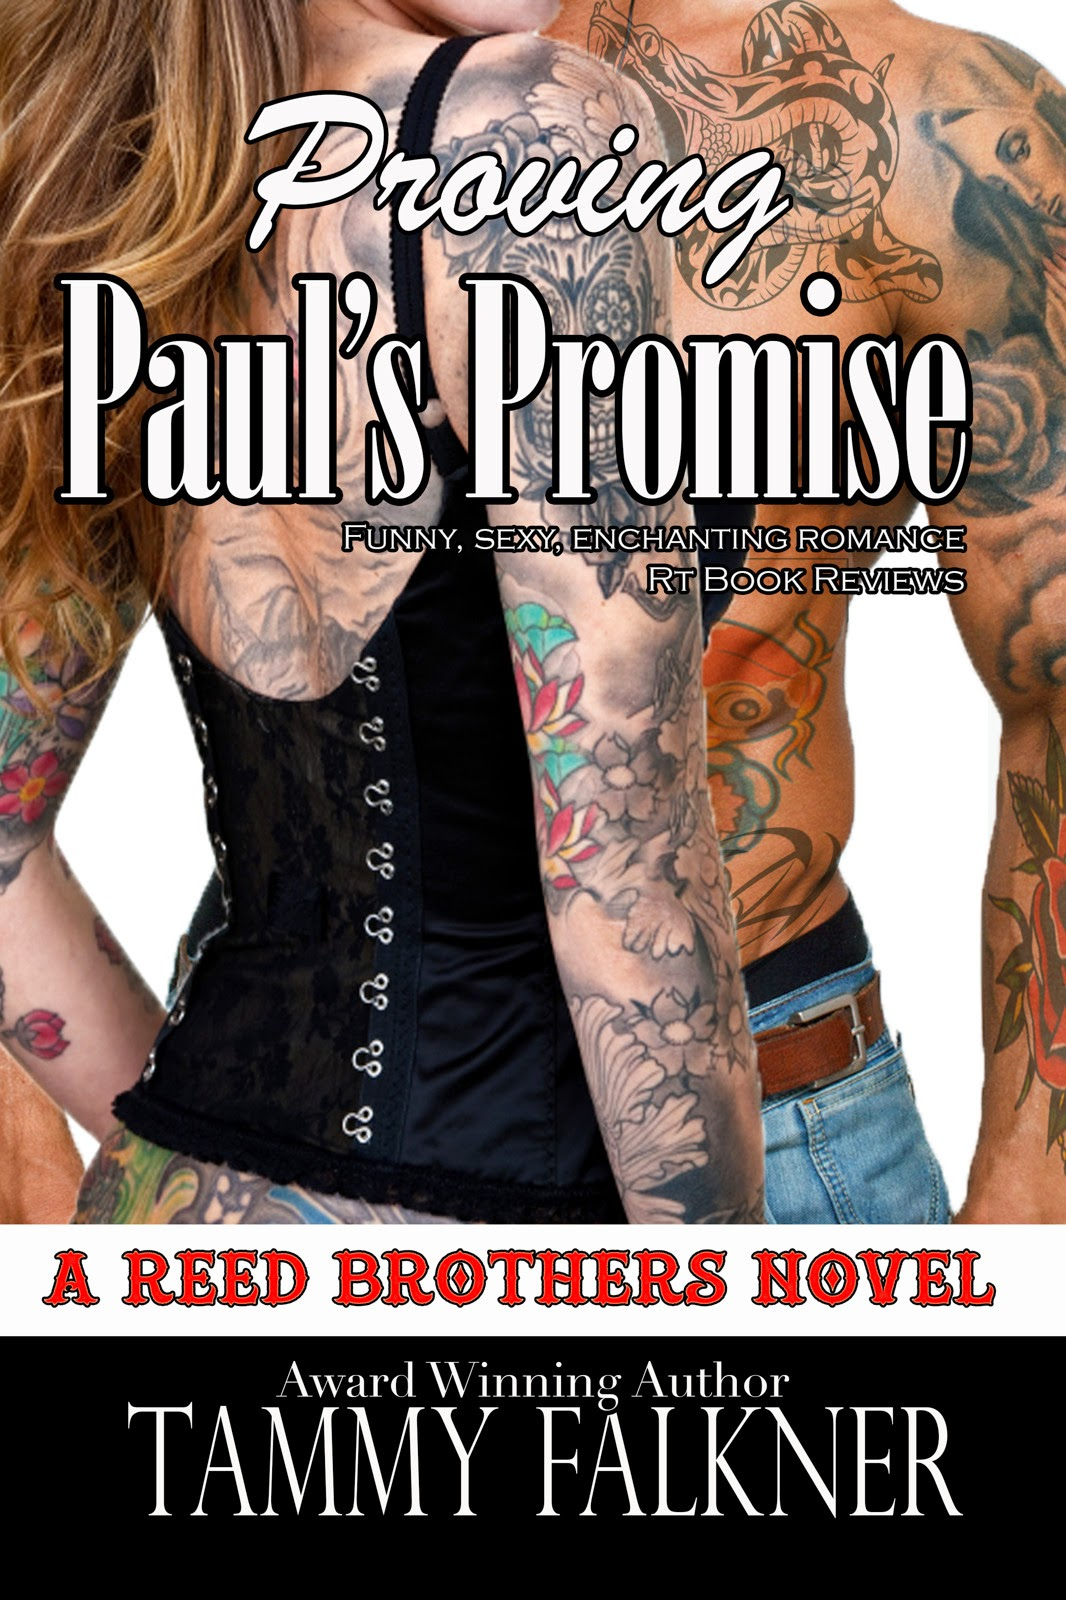 http://bookadictas.blogspot.com/2014/12/proving-pauls-promise-5-serie-reed.html